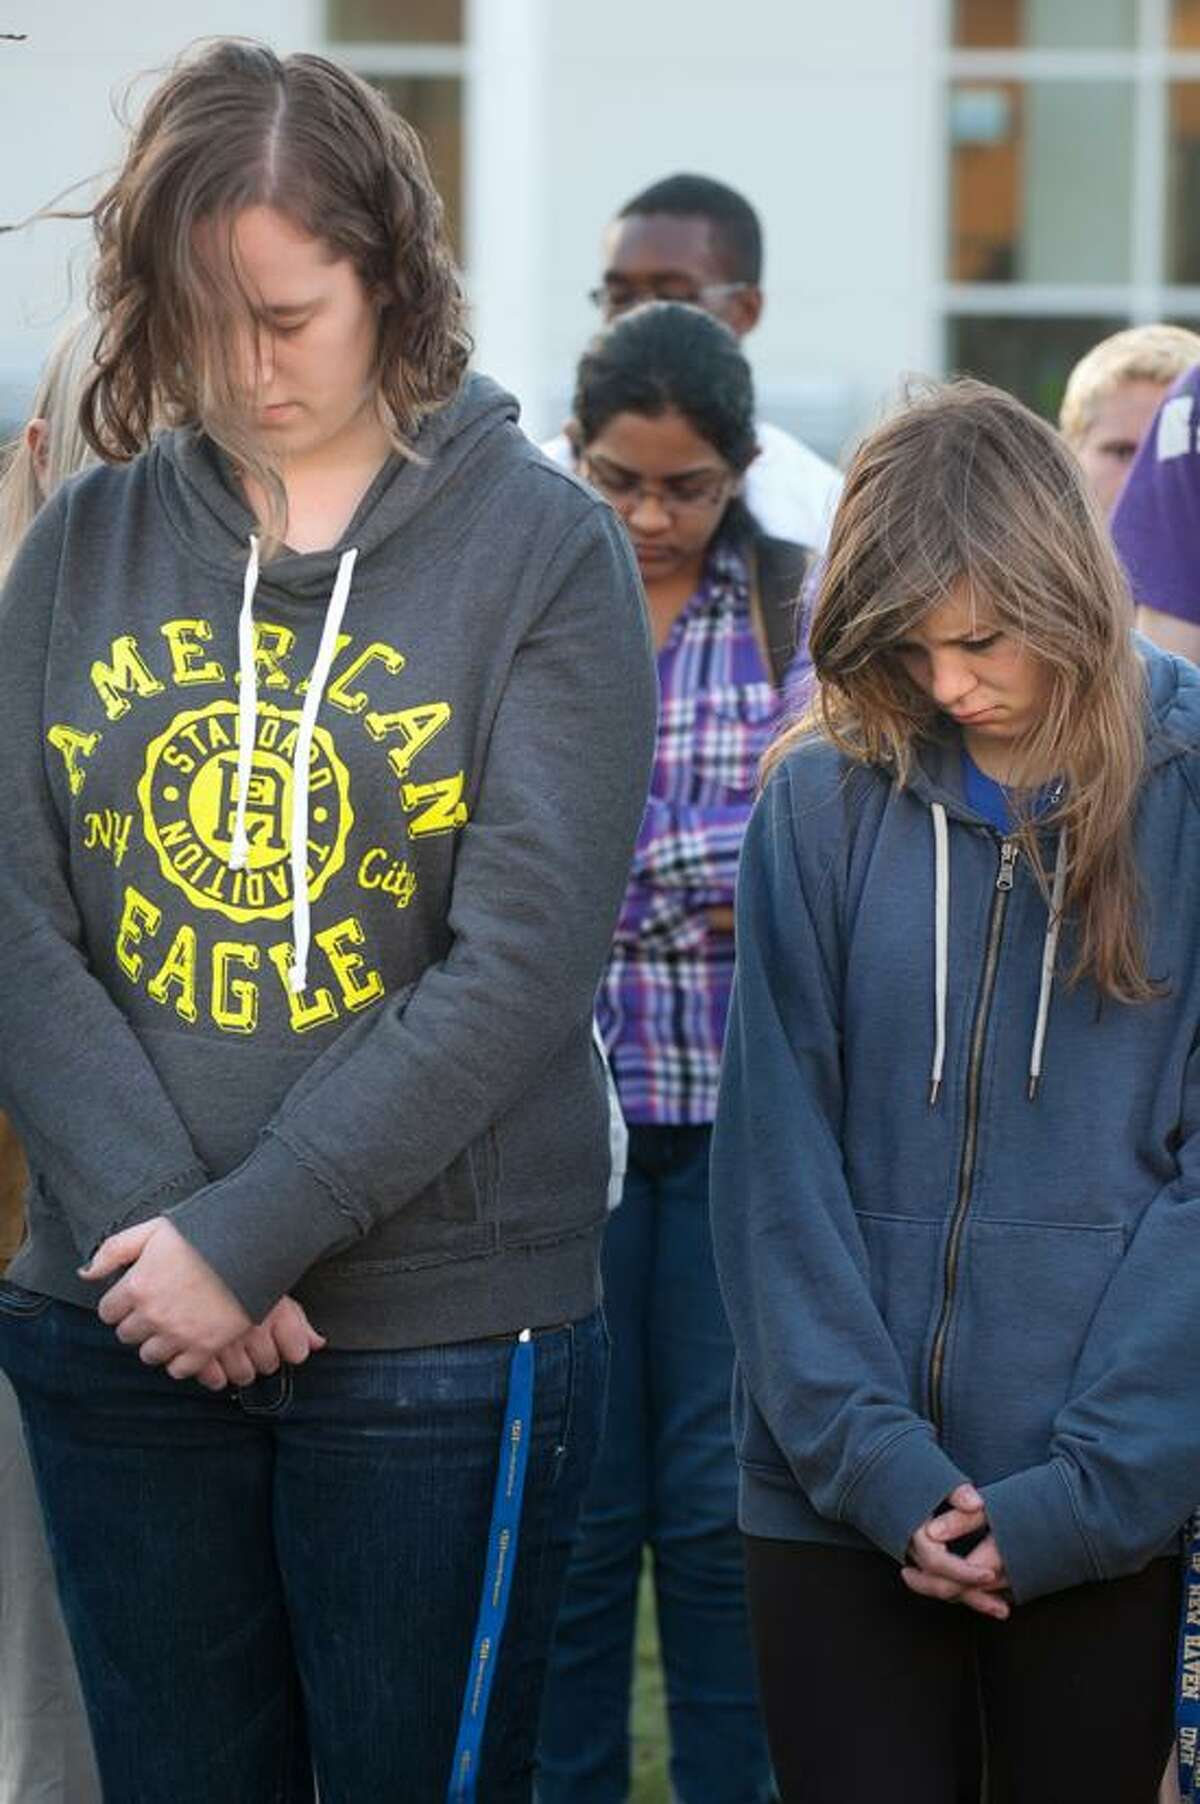 Alaina Kaiser, a sophomore and Marija Savaiko, a freshmen observe a moment of silence during a student vigil at UNH to remember those affected by the events of the Boston Marathon explosions April 17, 2013. vm Williams